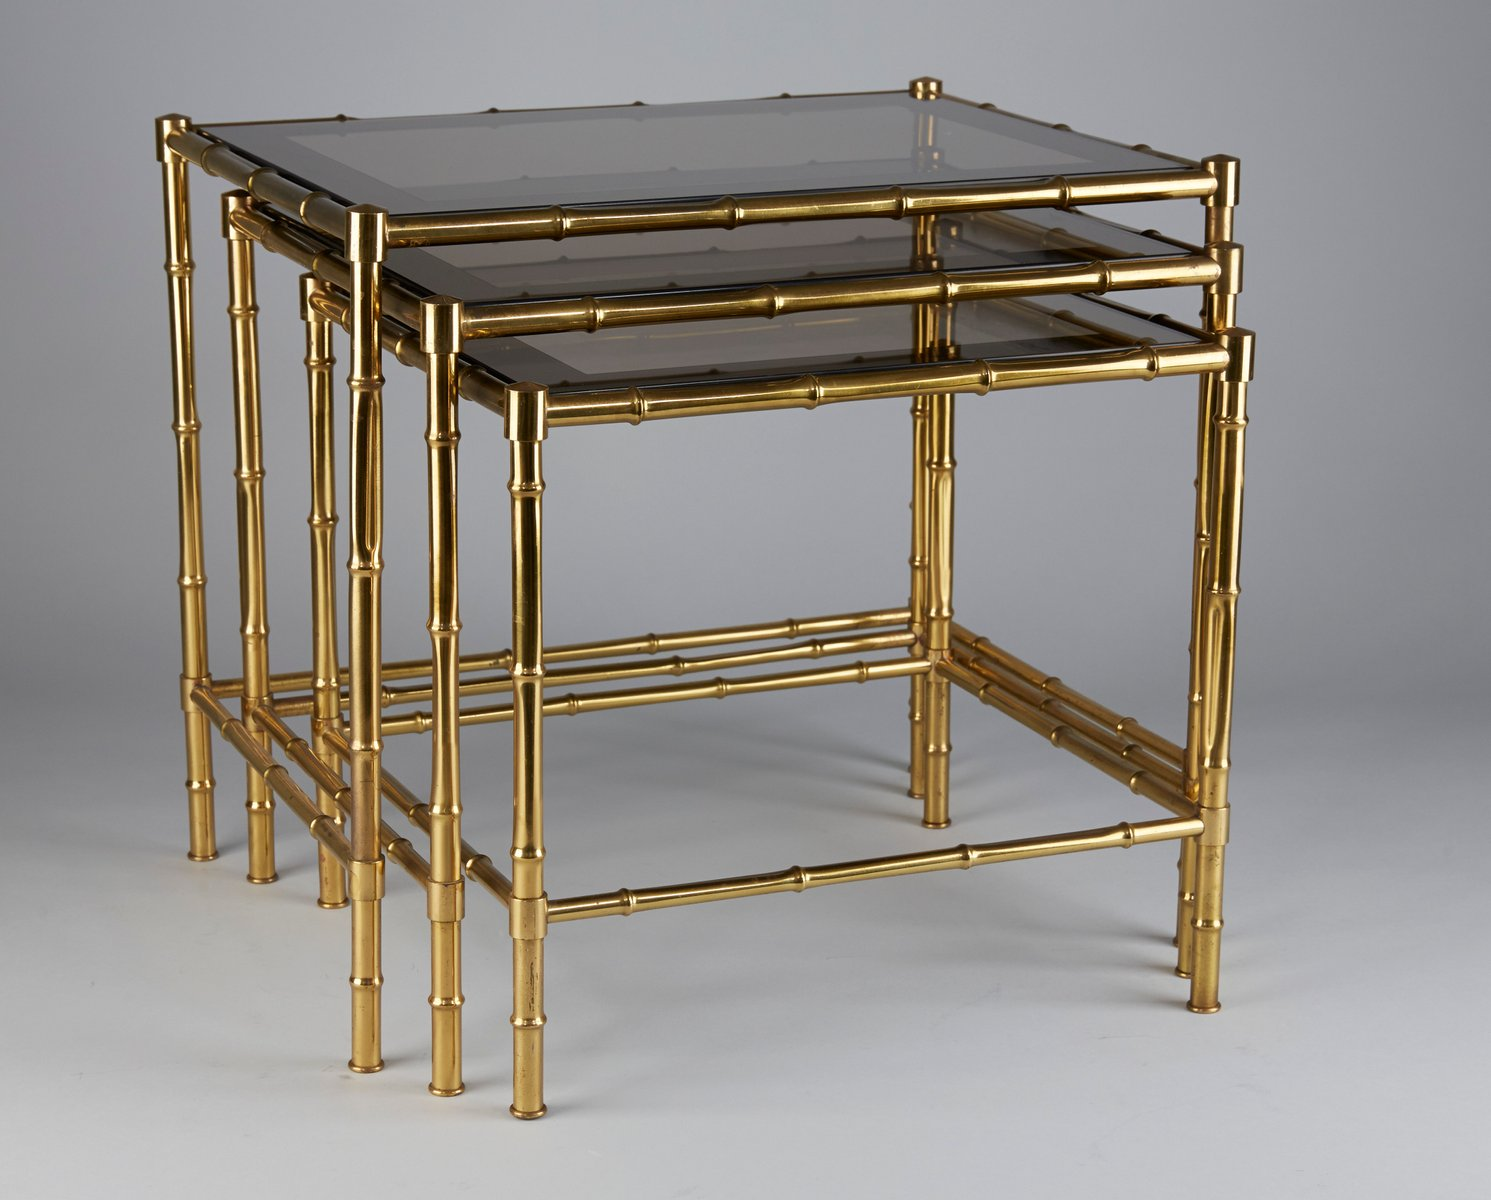 brass faux bamboo nesting tables s for sale at pamono -